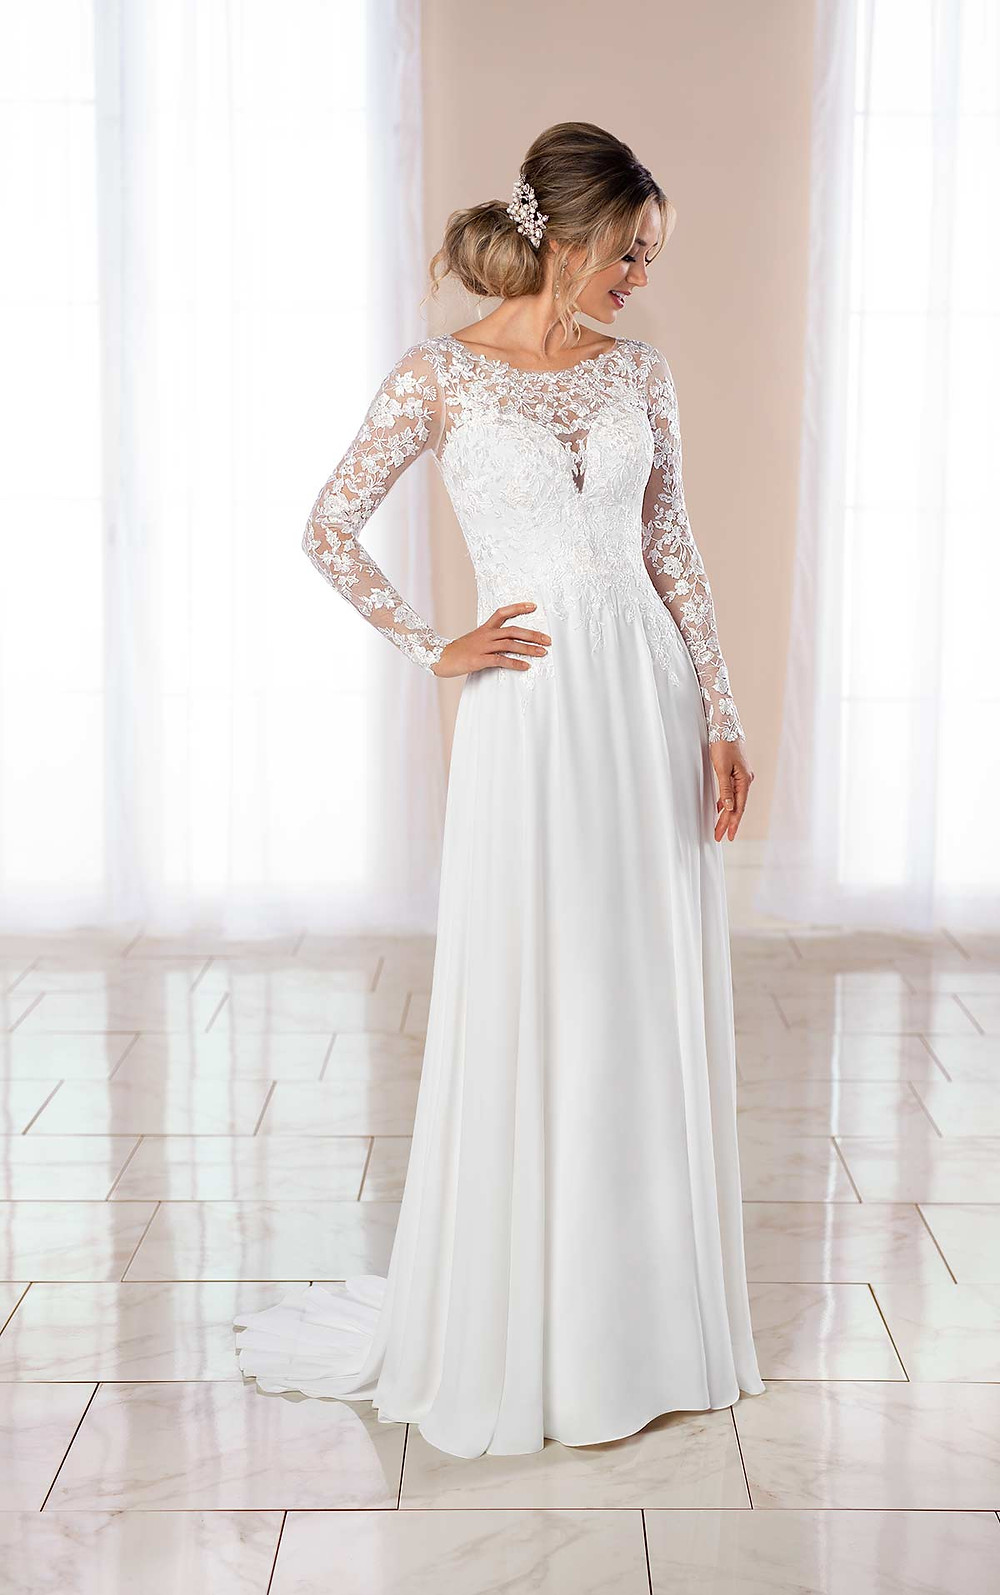 A Stella York 2020 lace and chiffon empire waist wedding dress with long sleeves